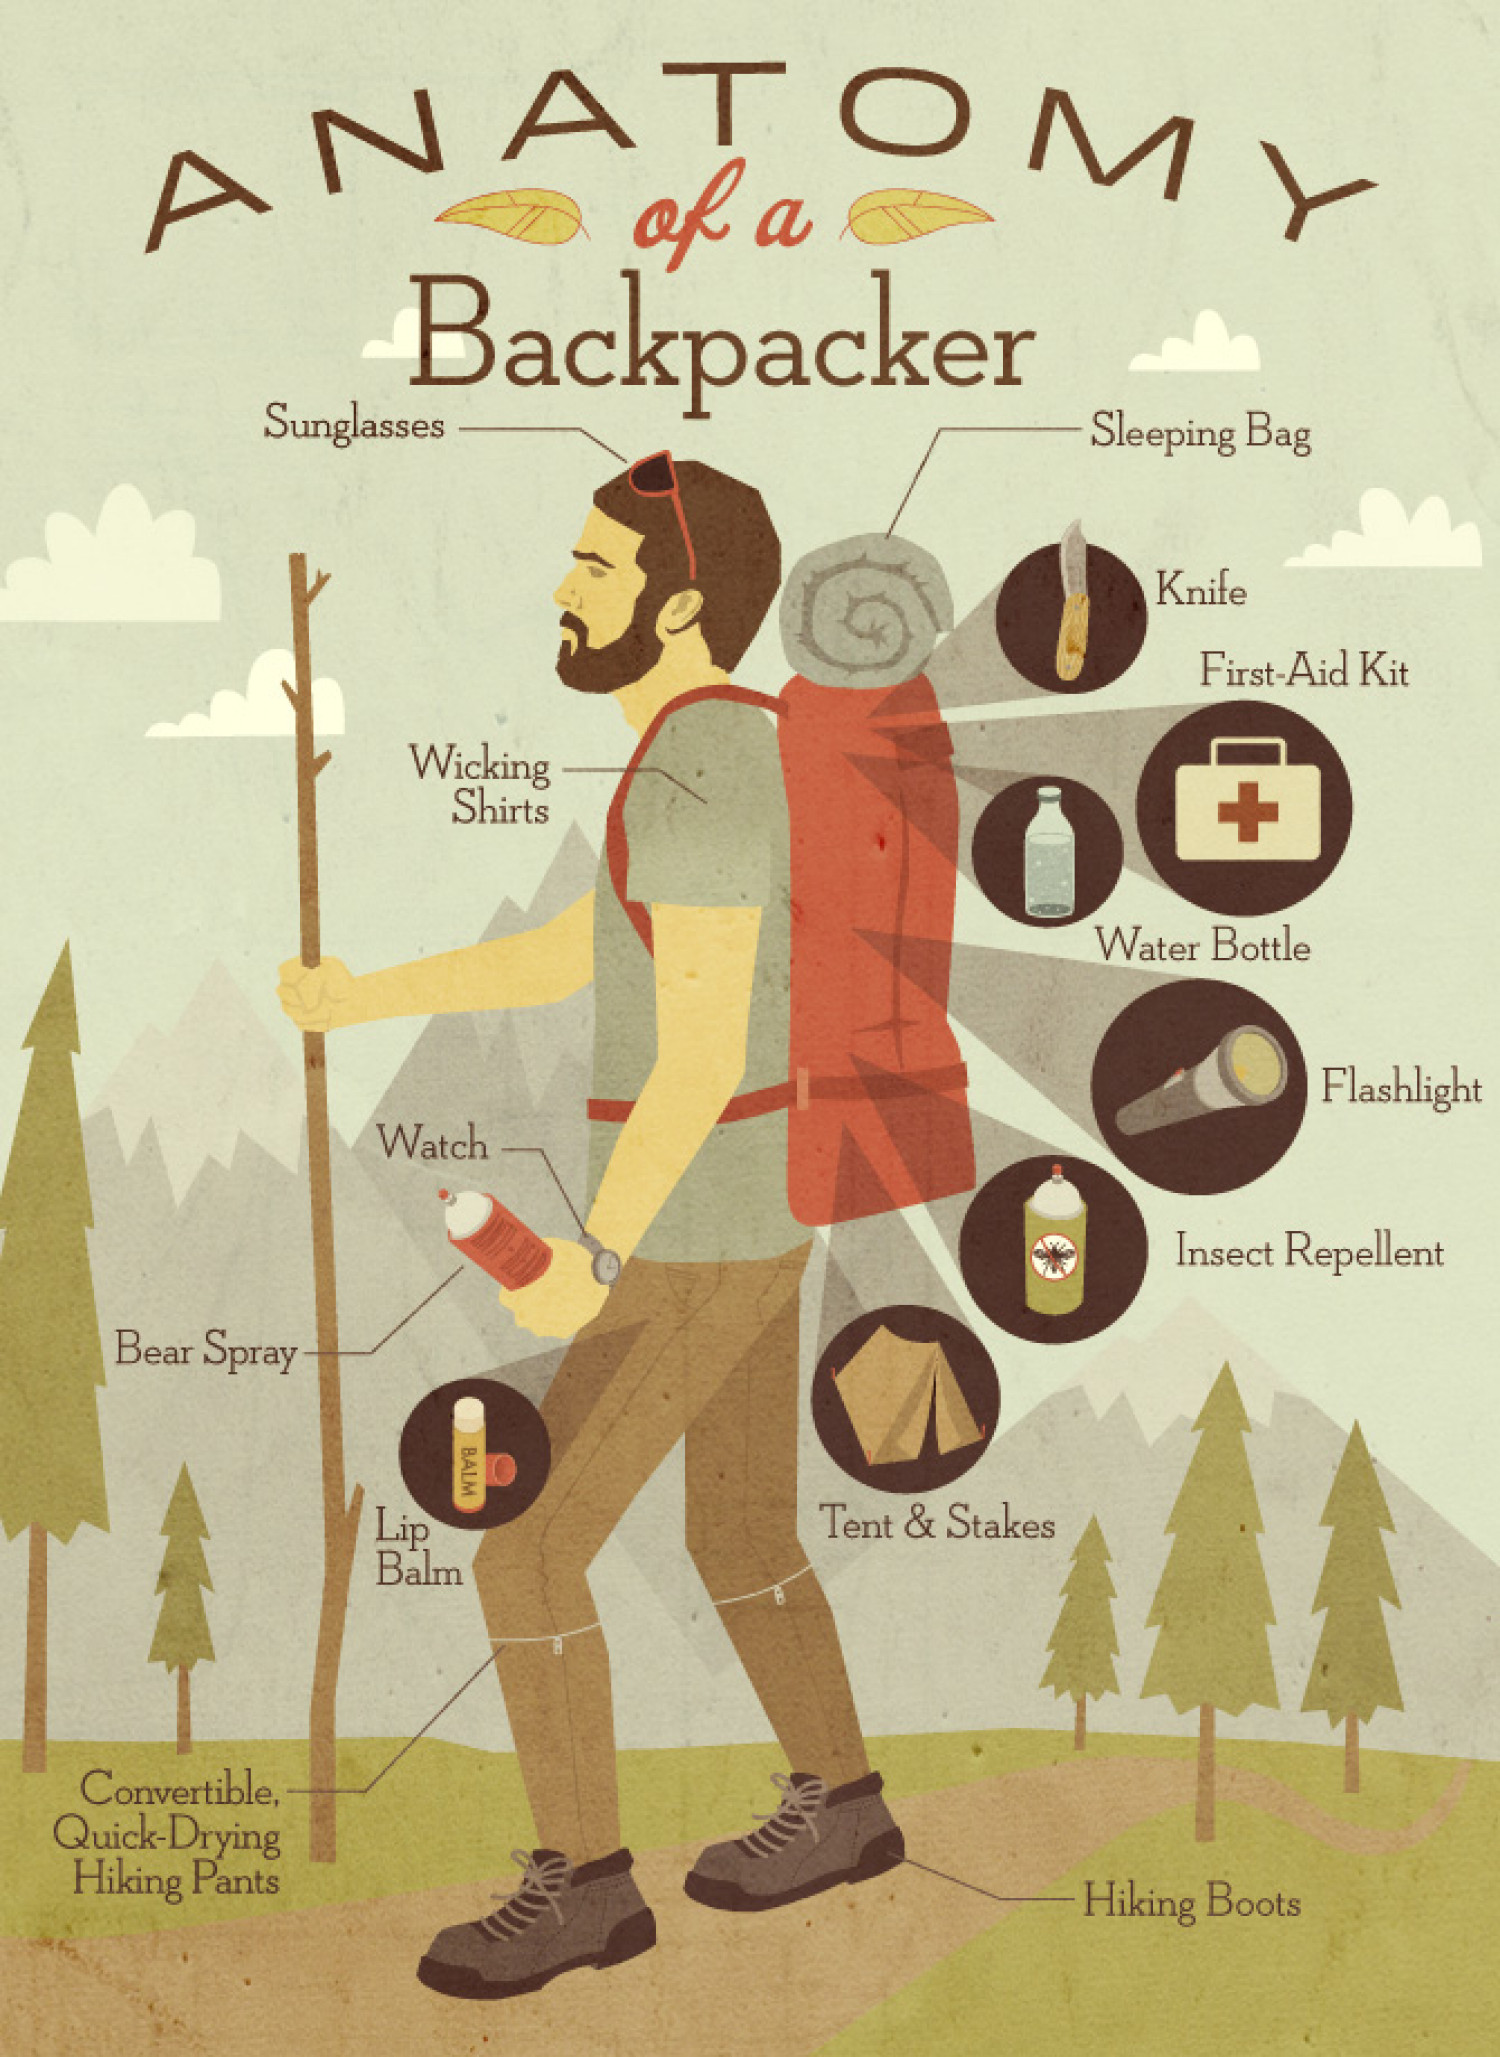 Anatomy of a Backpacker | Visual.ly